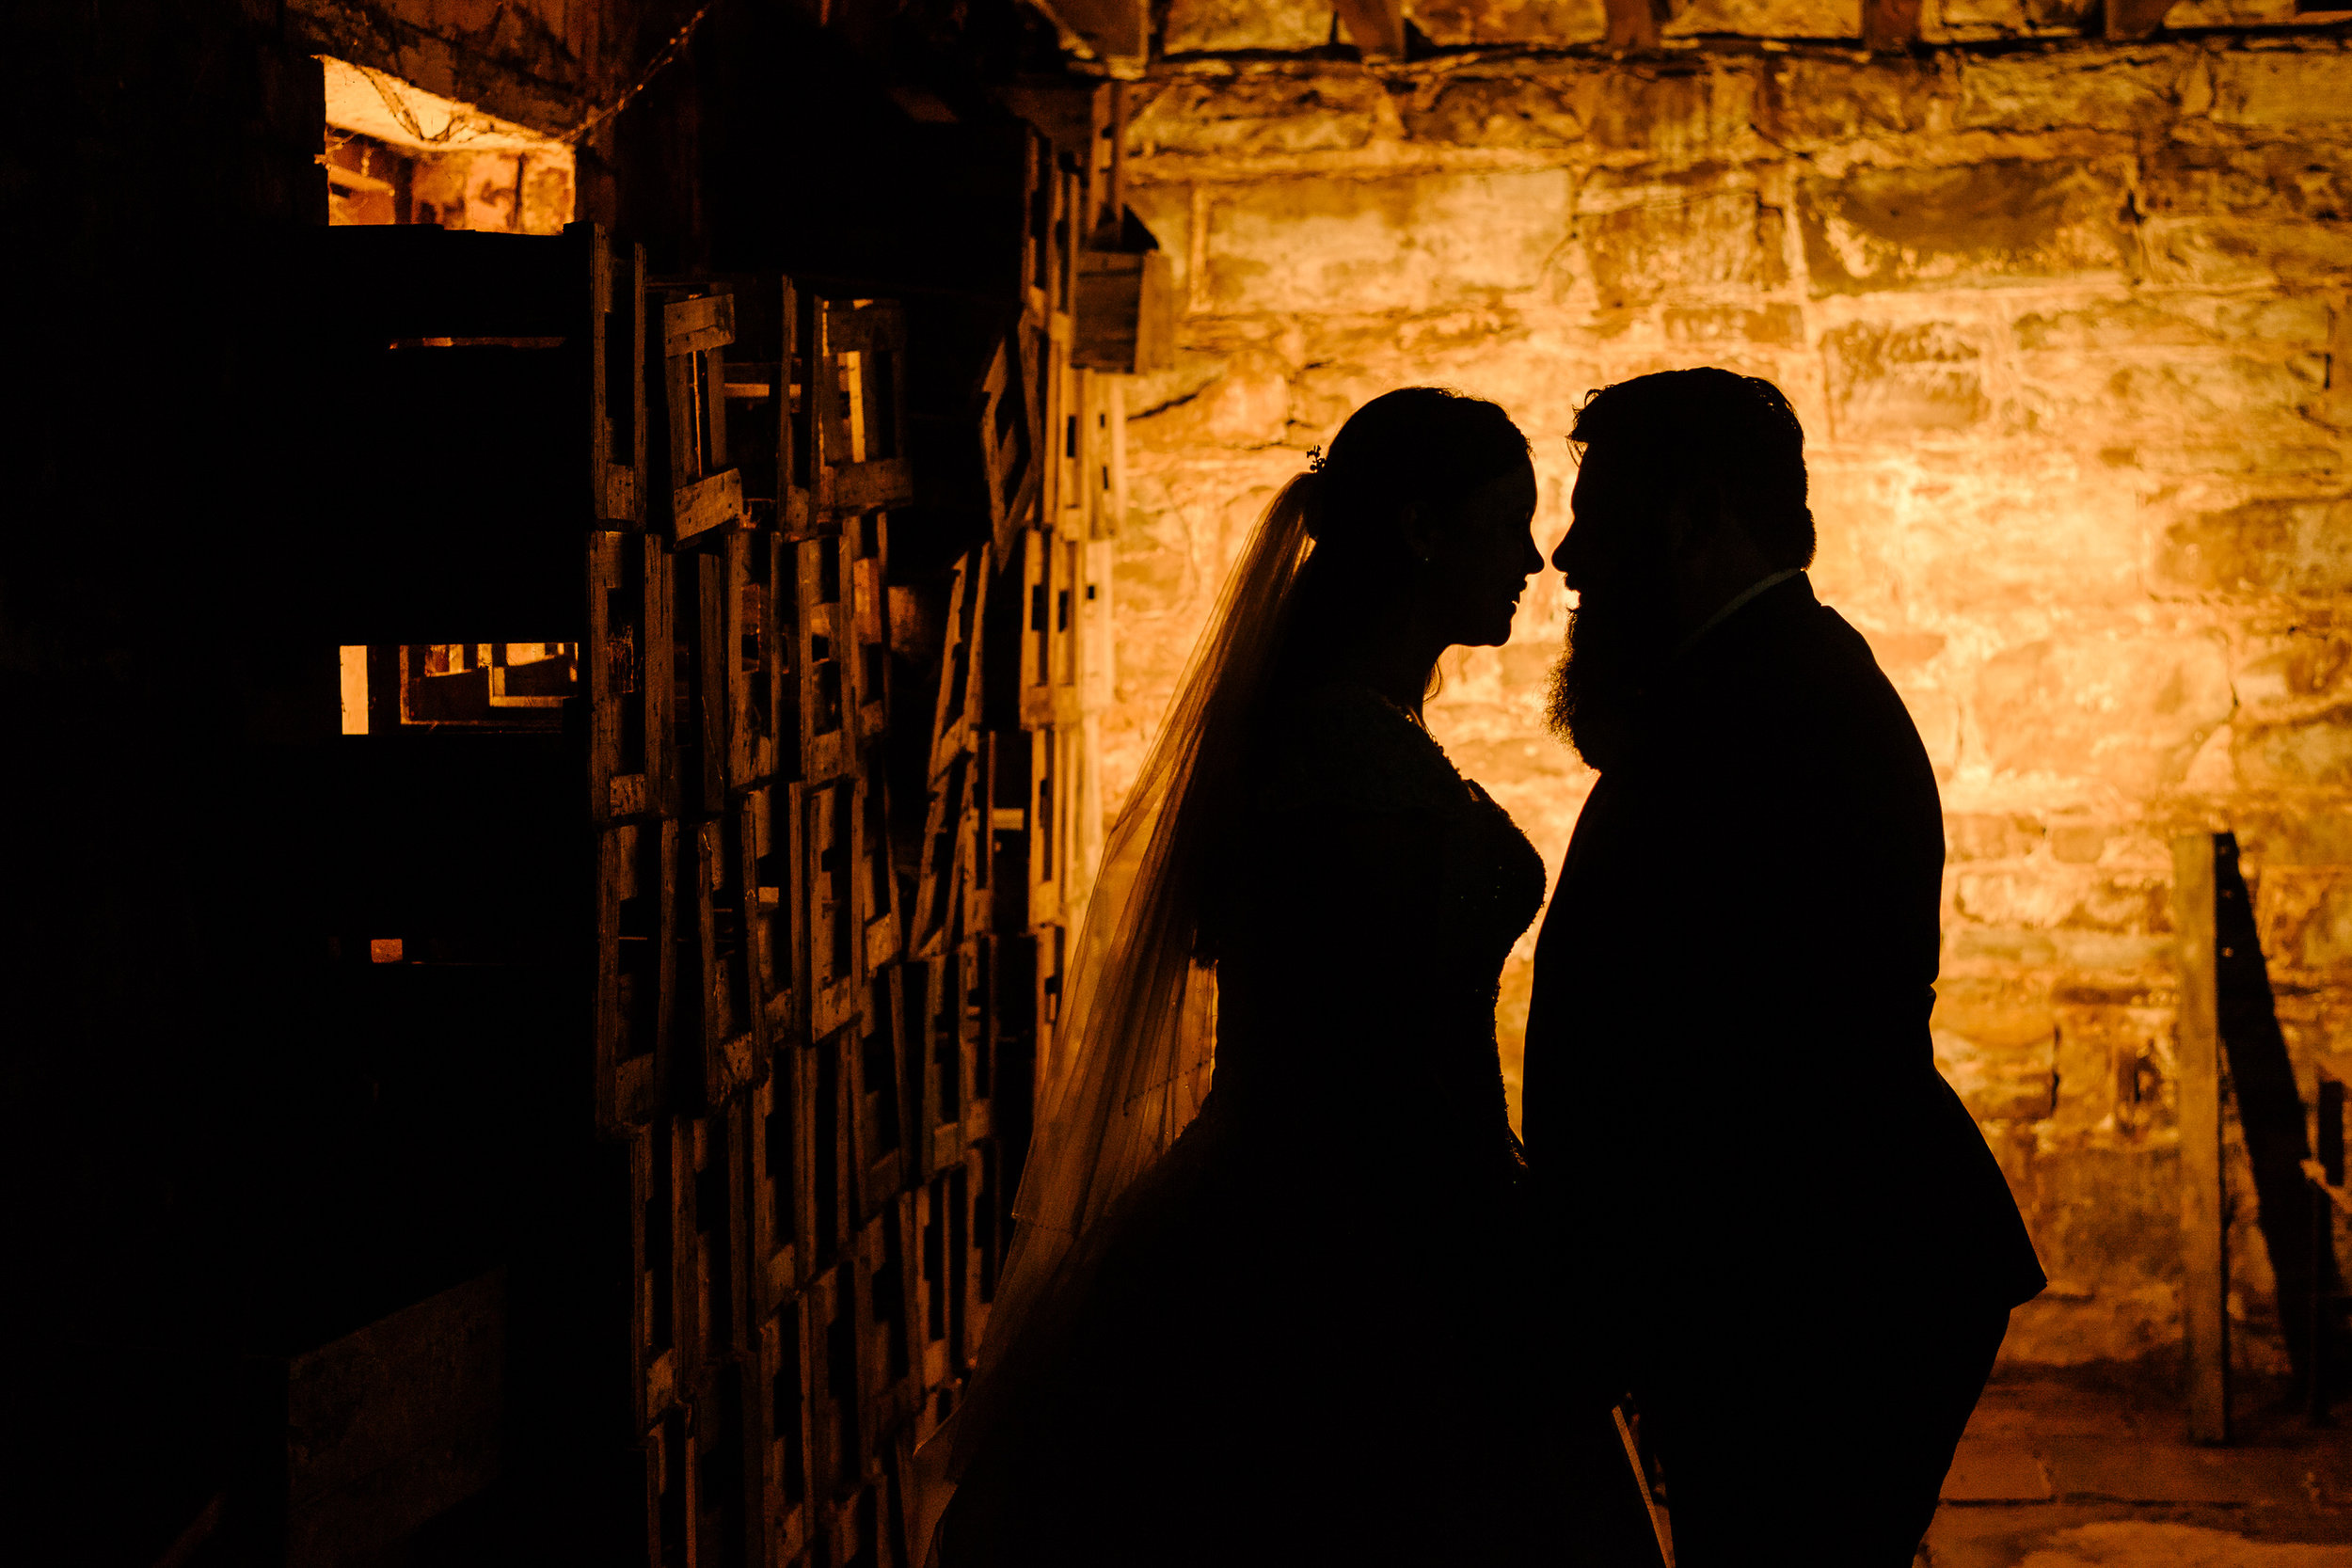 Chateau_Dore_Wedding_Photography_Justin_and_Jim-267.JPG